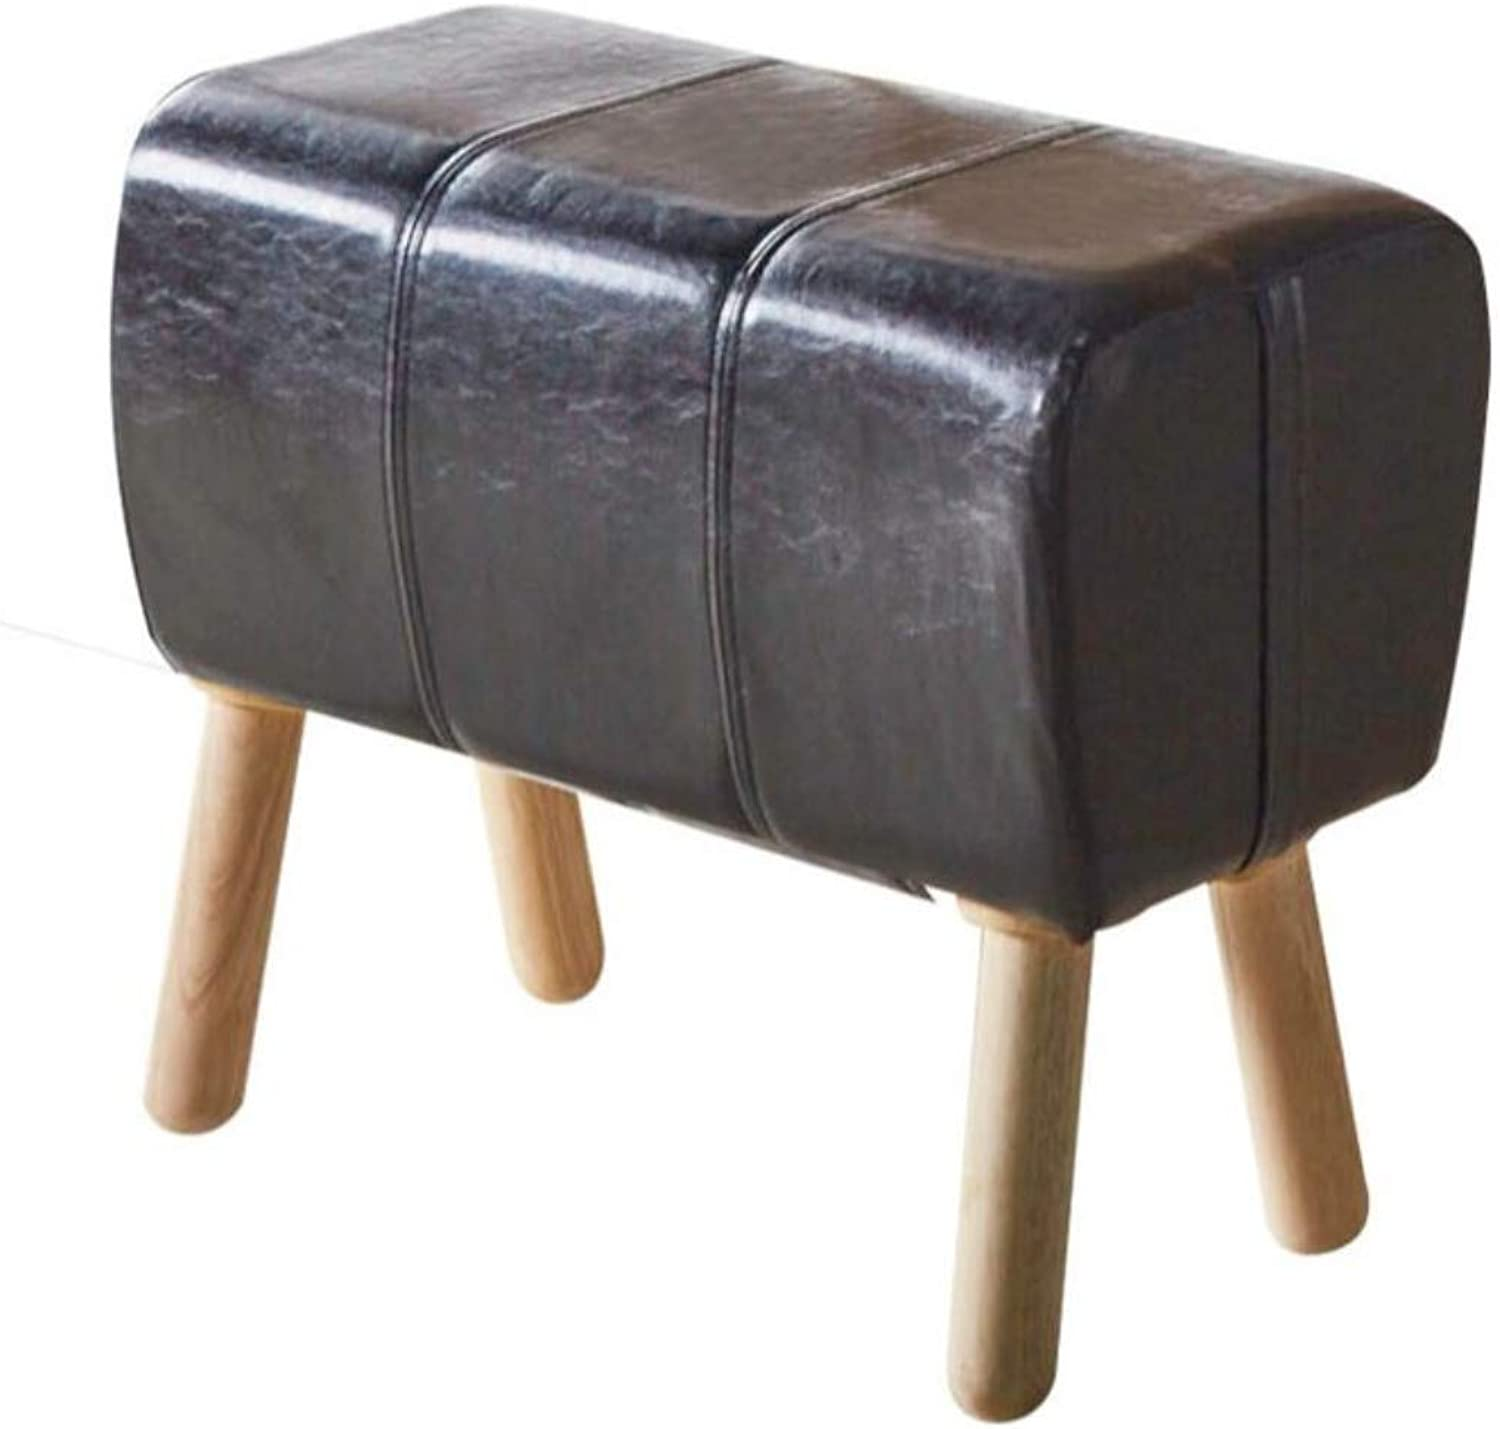 Benjara BM193787 Backless Stool with Wooden Round Flared Legs, Black and Brown